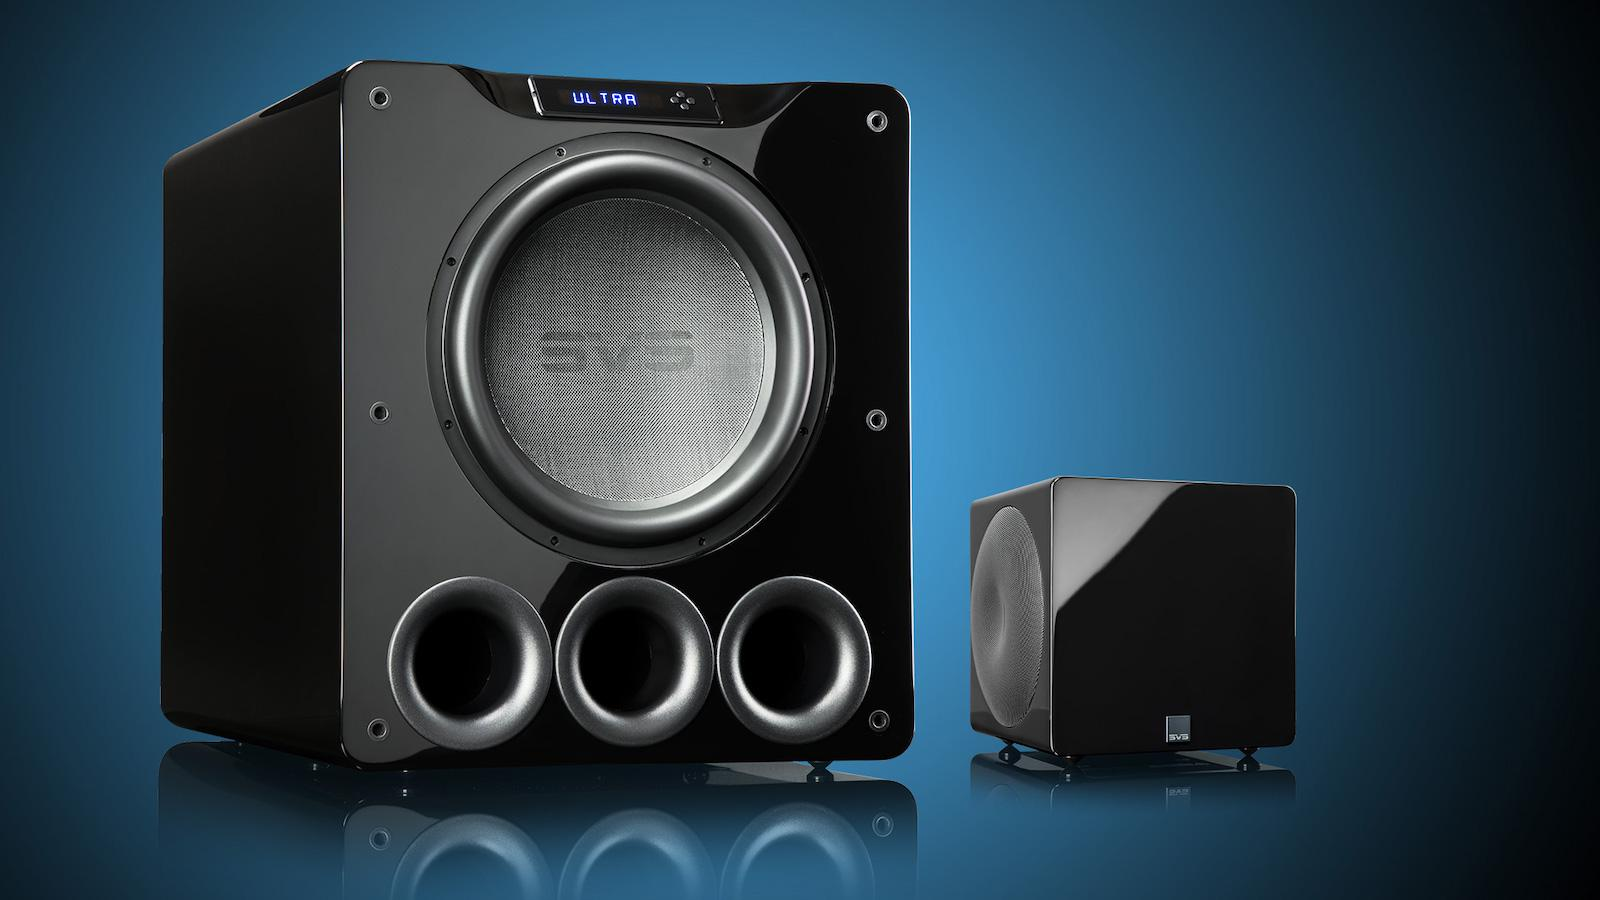 SVS 3000 Micro Subwoofer Compared to SVS PB-16 Ultra Subwoofer